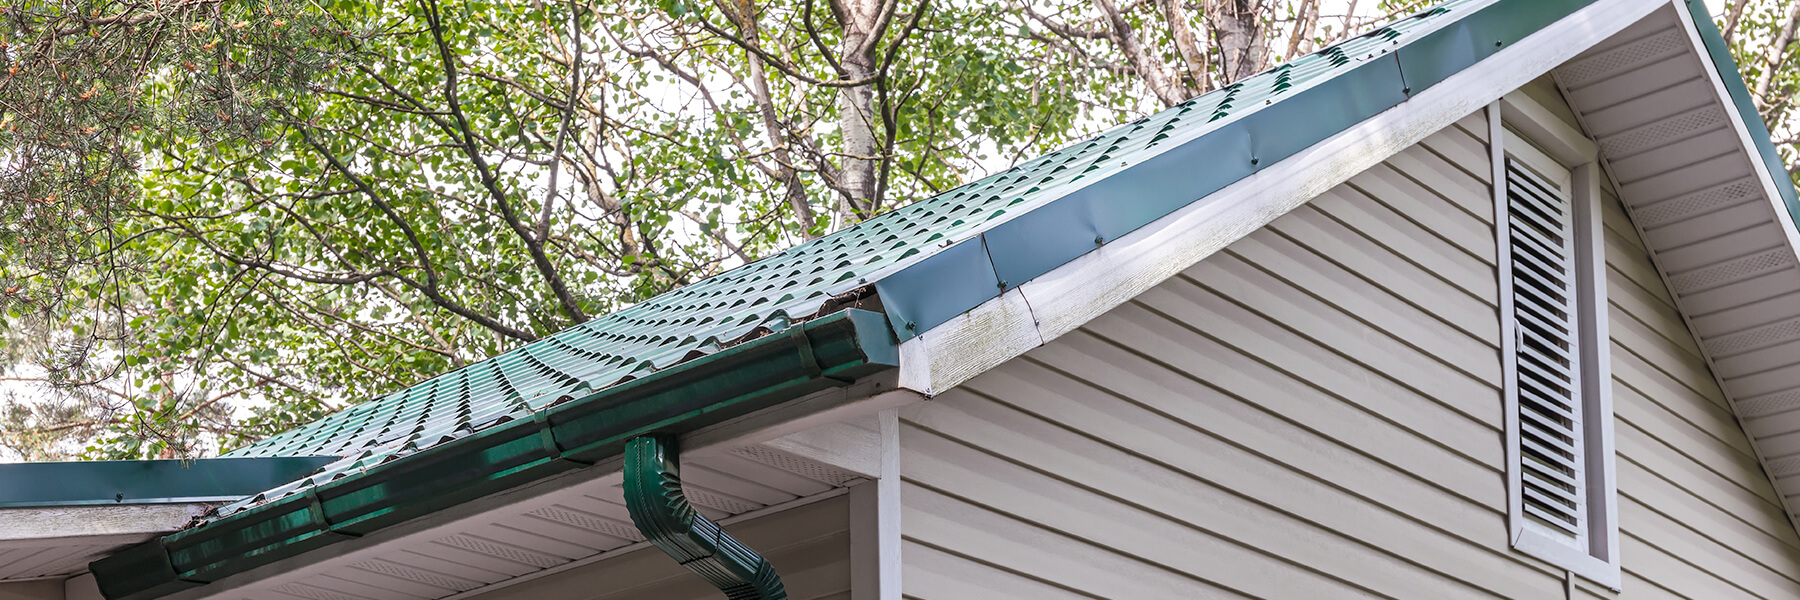 How To Match Siding To Roofing